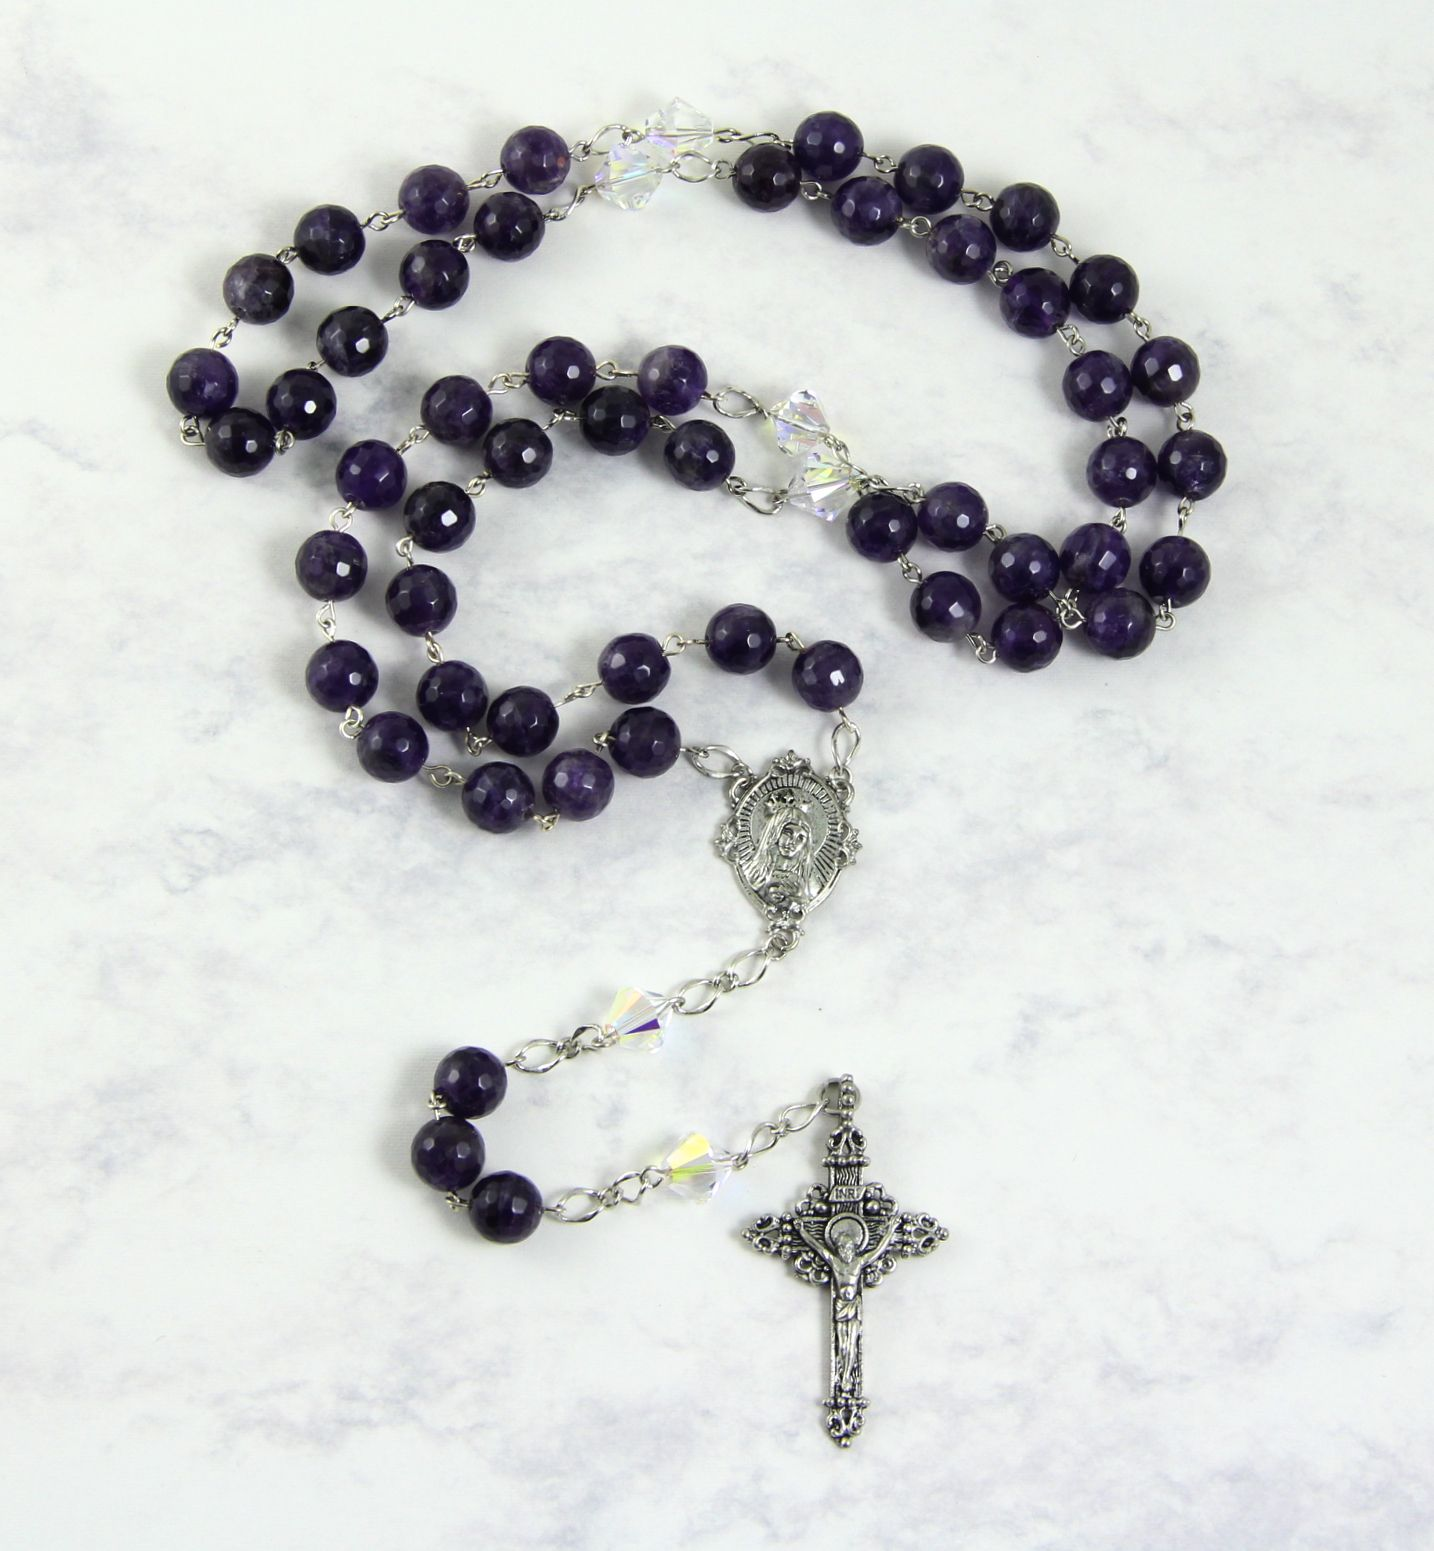 How To Make A Rosary | Jewelry ideas, Beads and Crafty